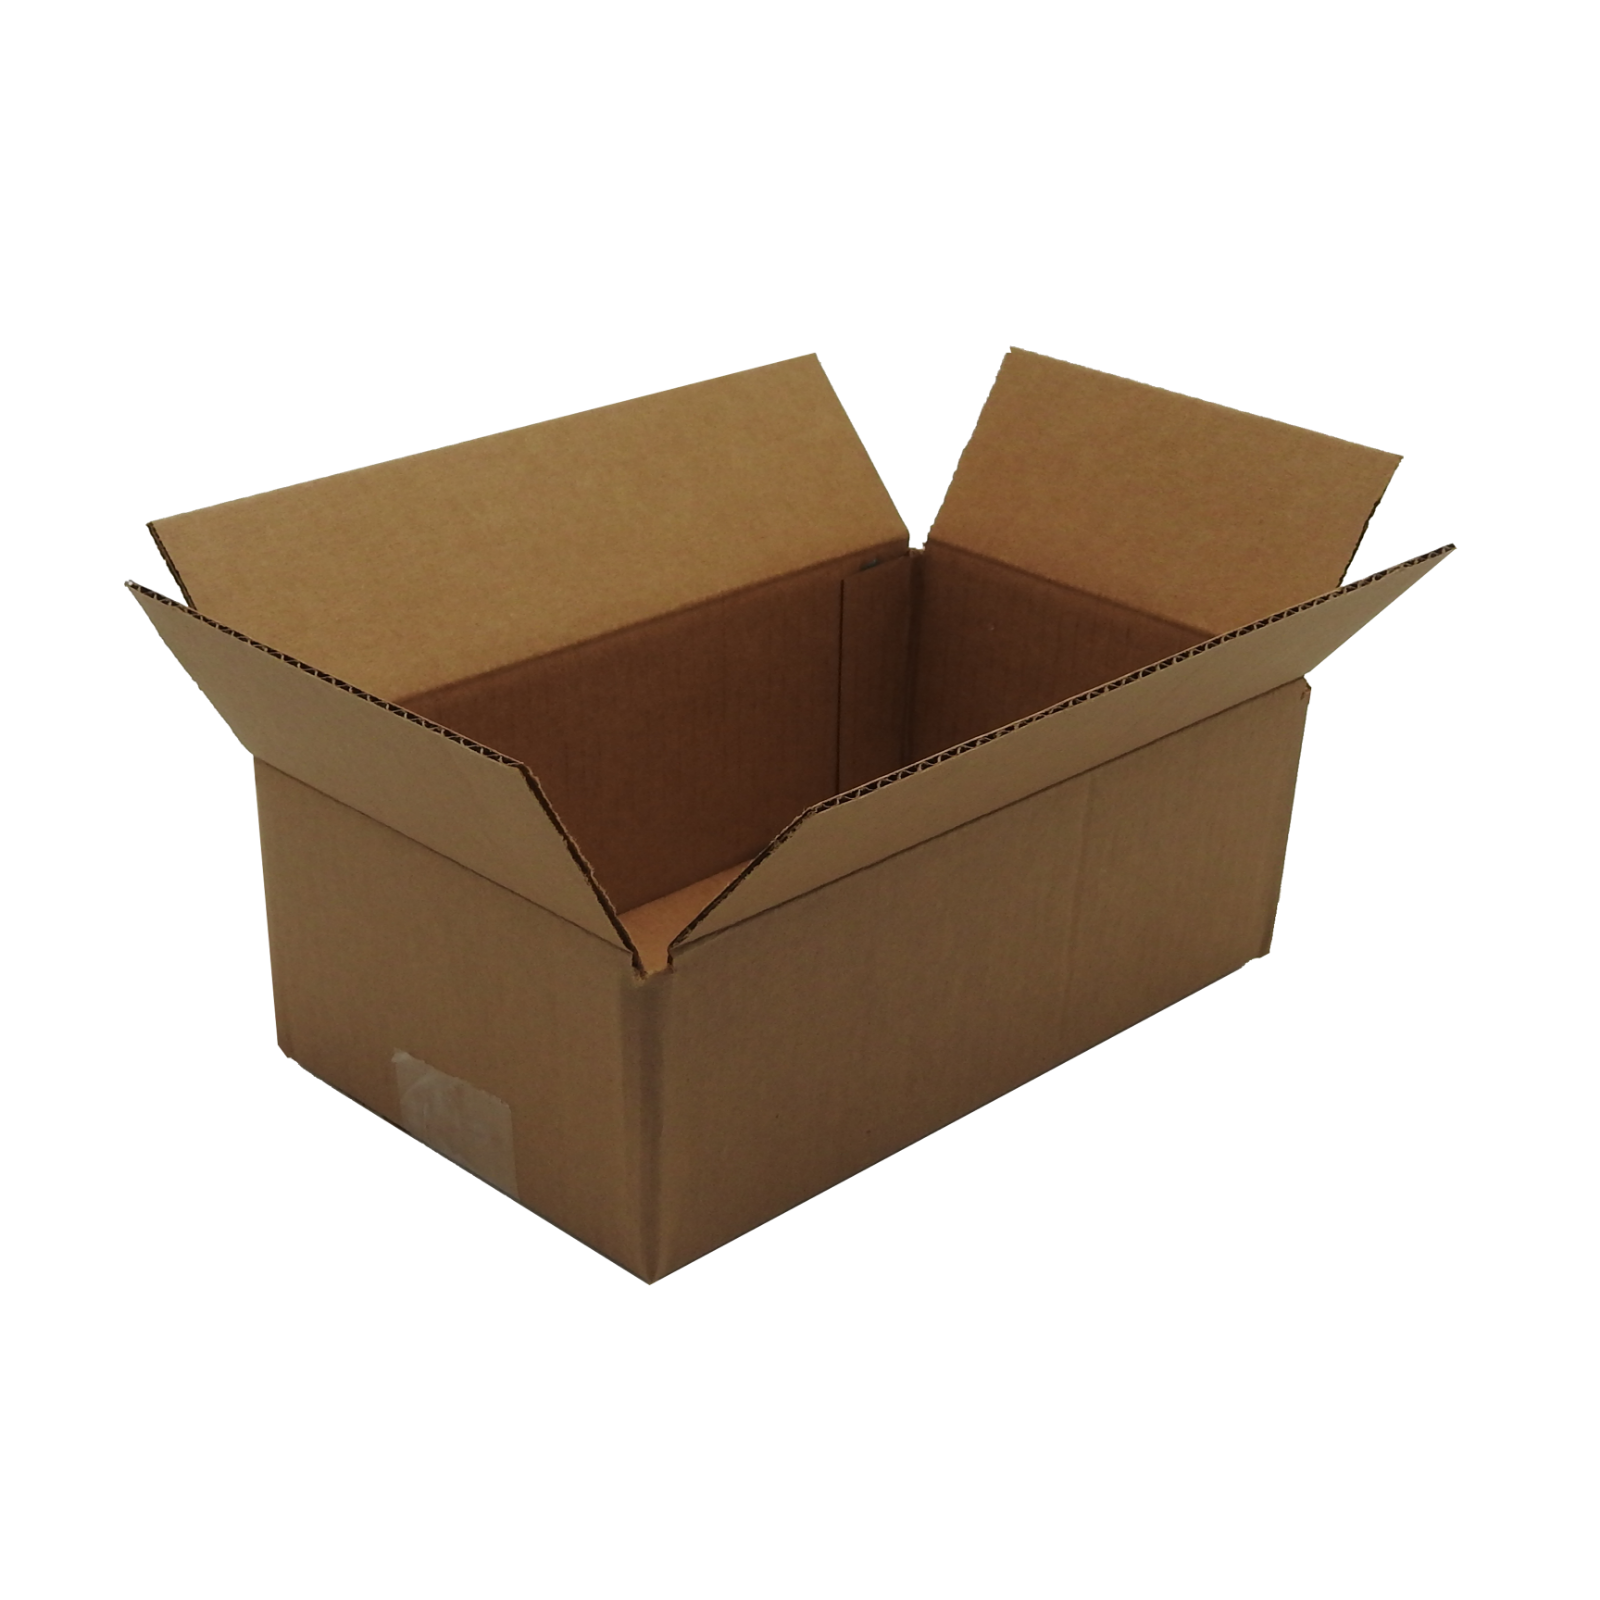 100 8x8x6 Corrugated Cardboard Shipping Mailing Packing Moving Boxes Box Carton